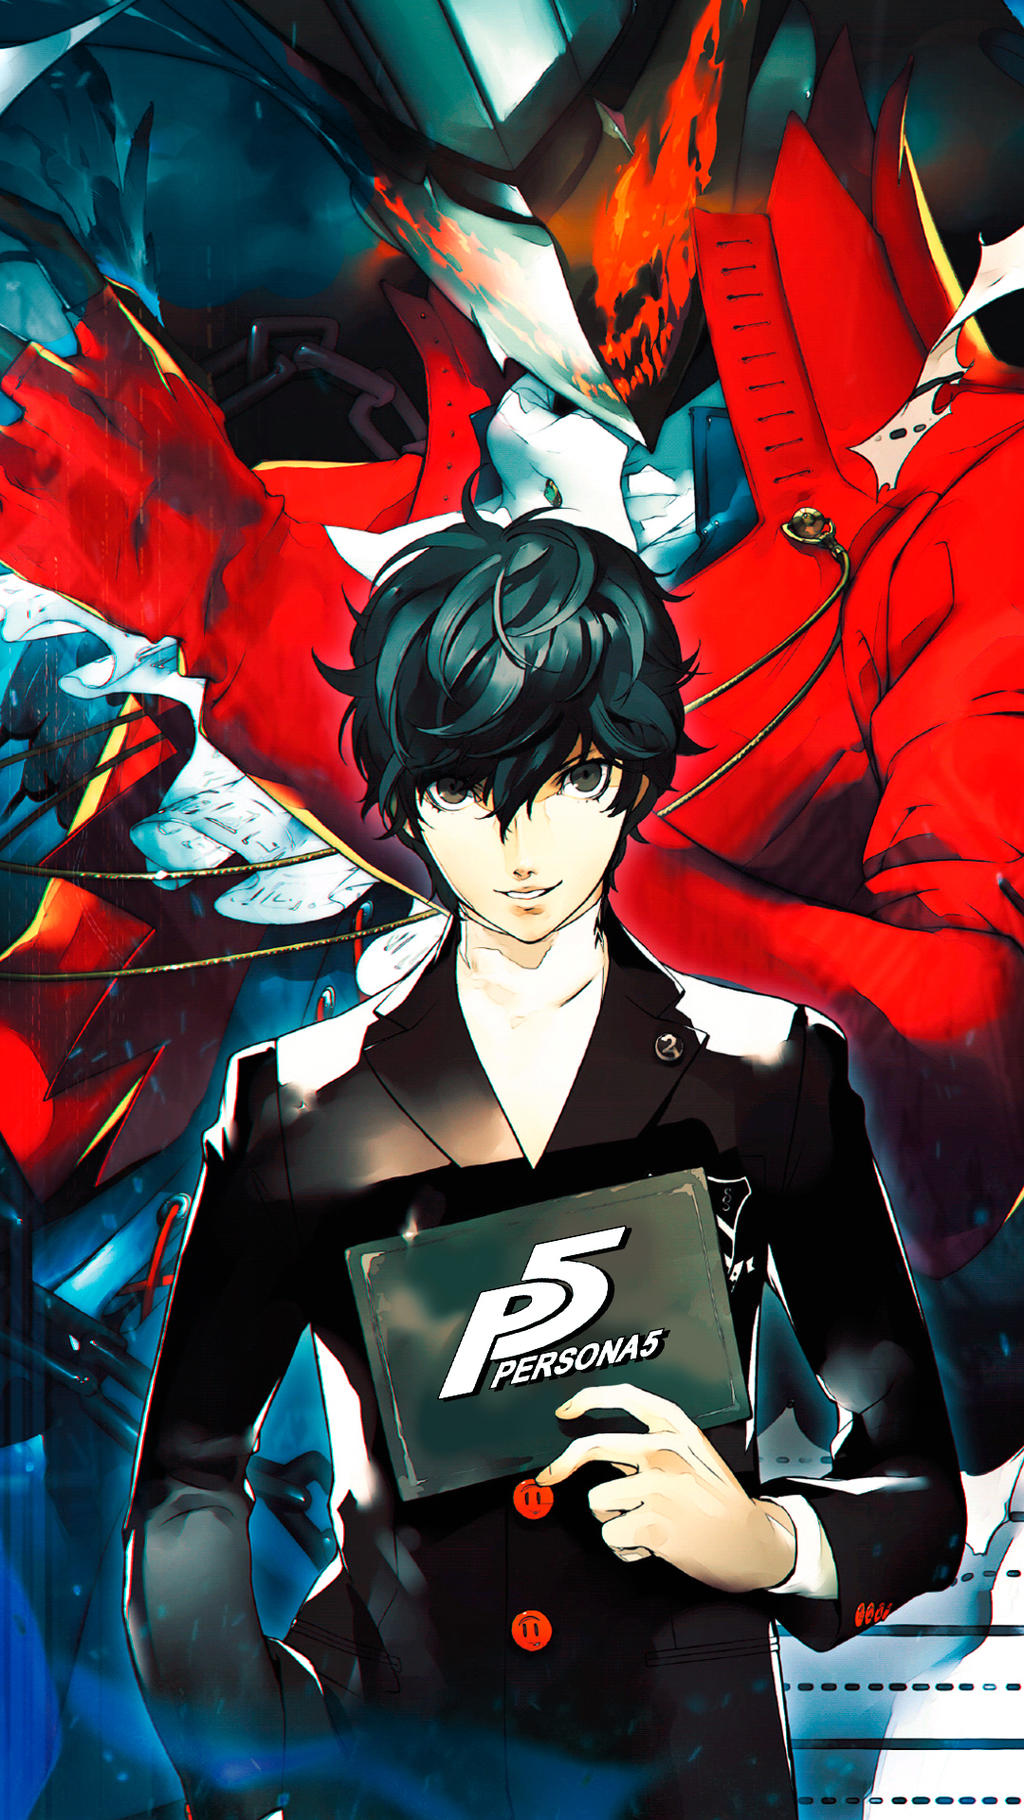 Persona 3 iphone 5 wallpaper -  Persona 5 Wallpaper For Smartphone By De Monvarela